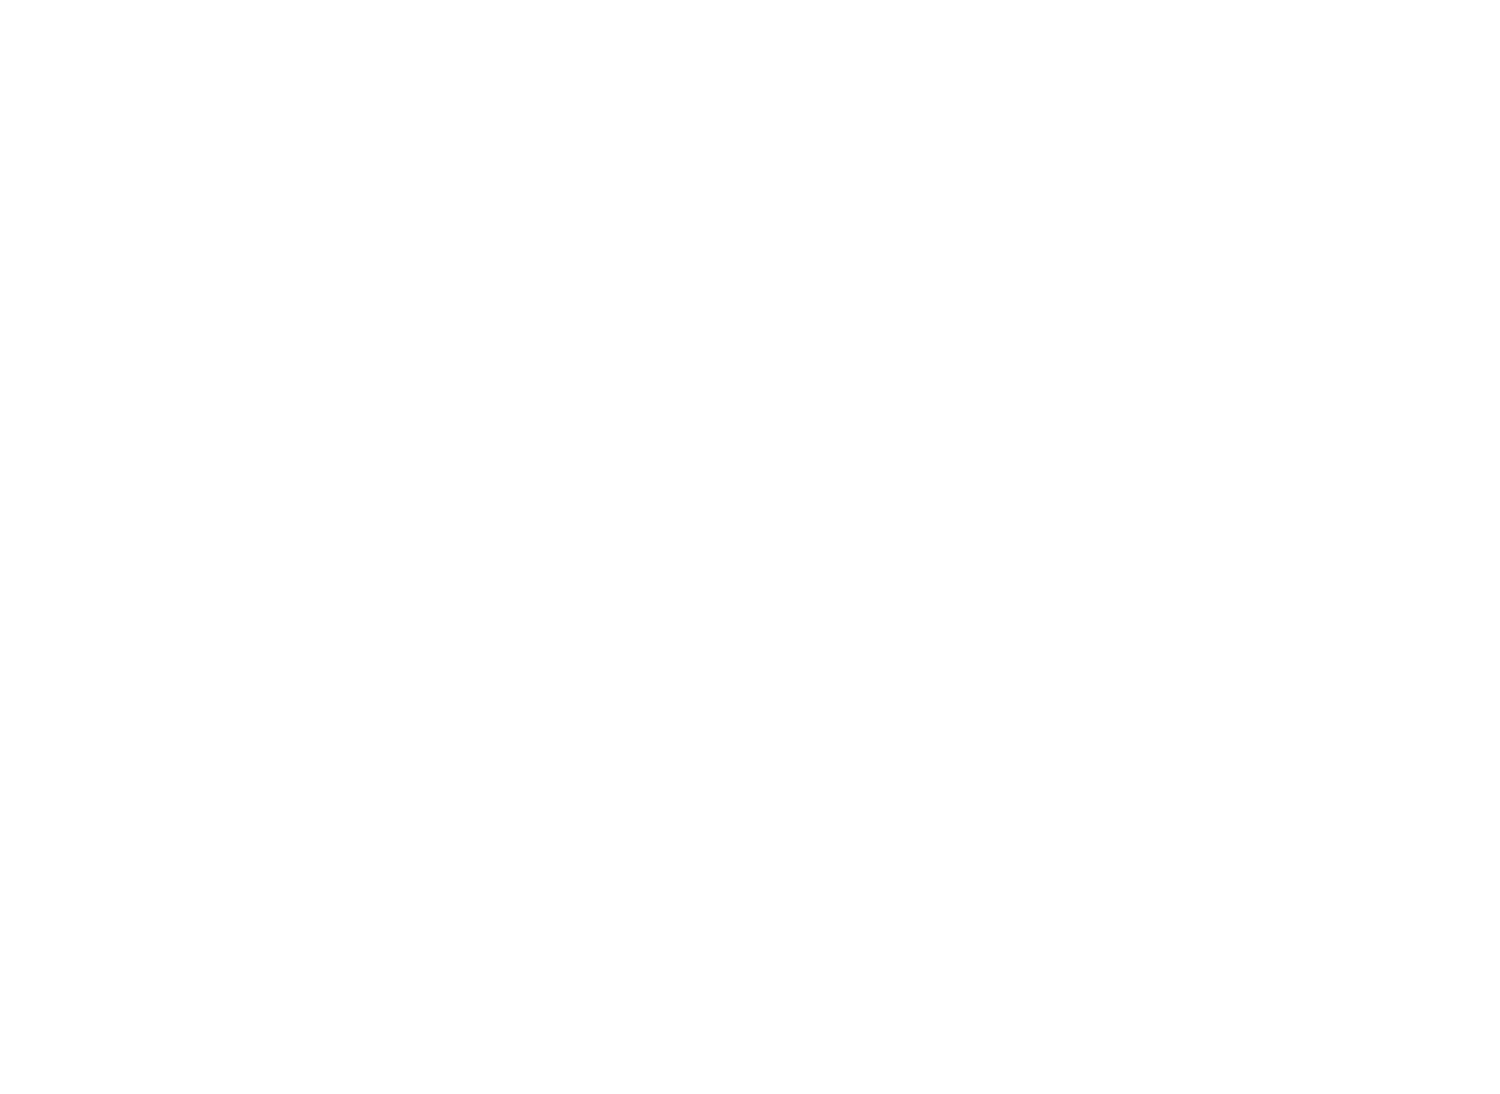 Bradley James Entertainment